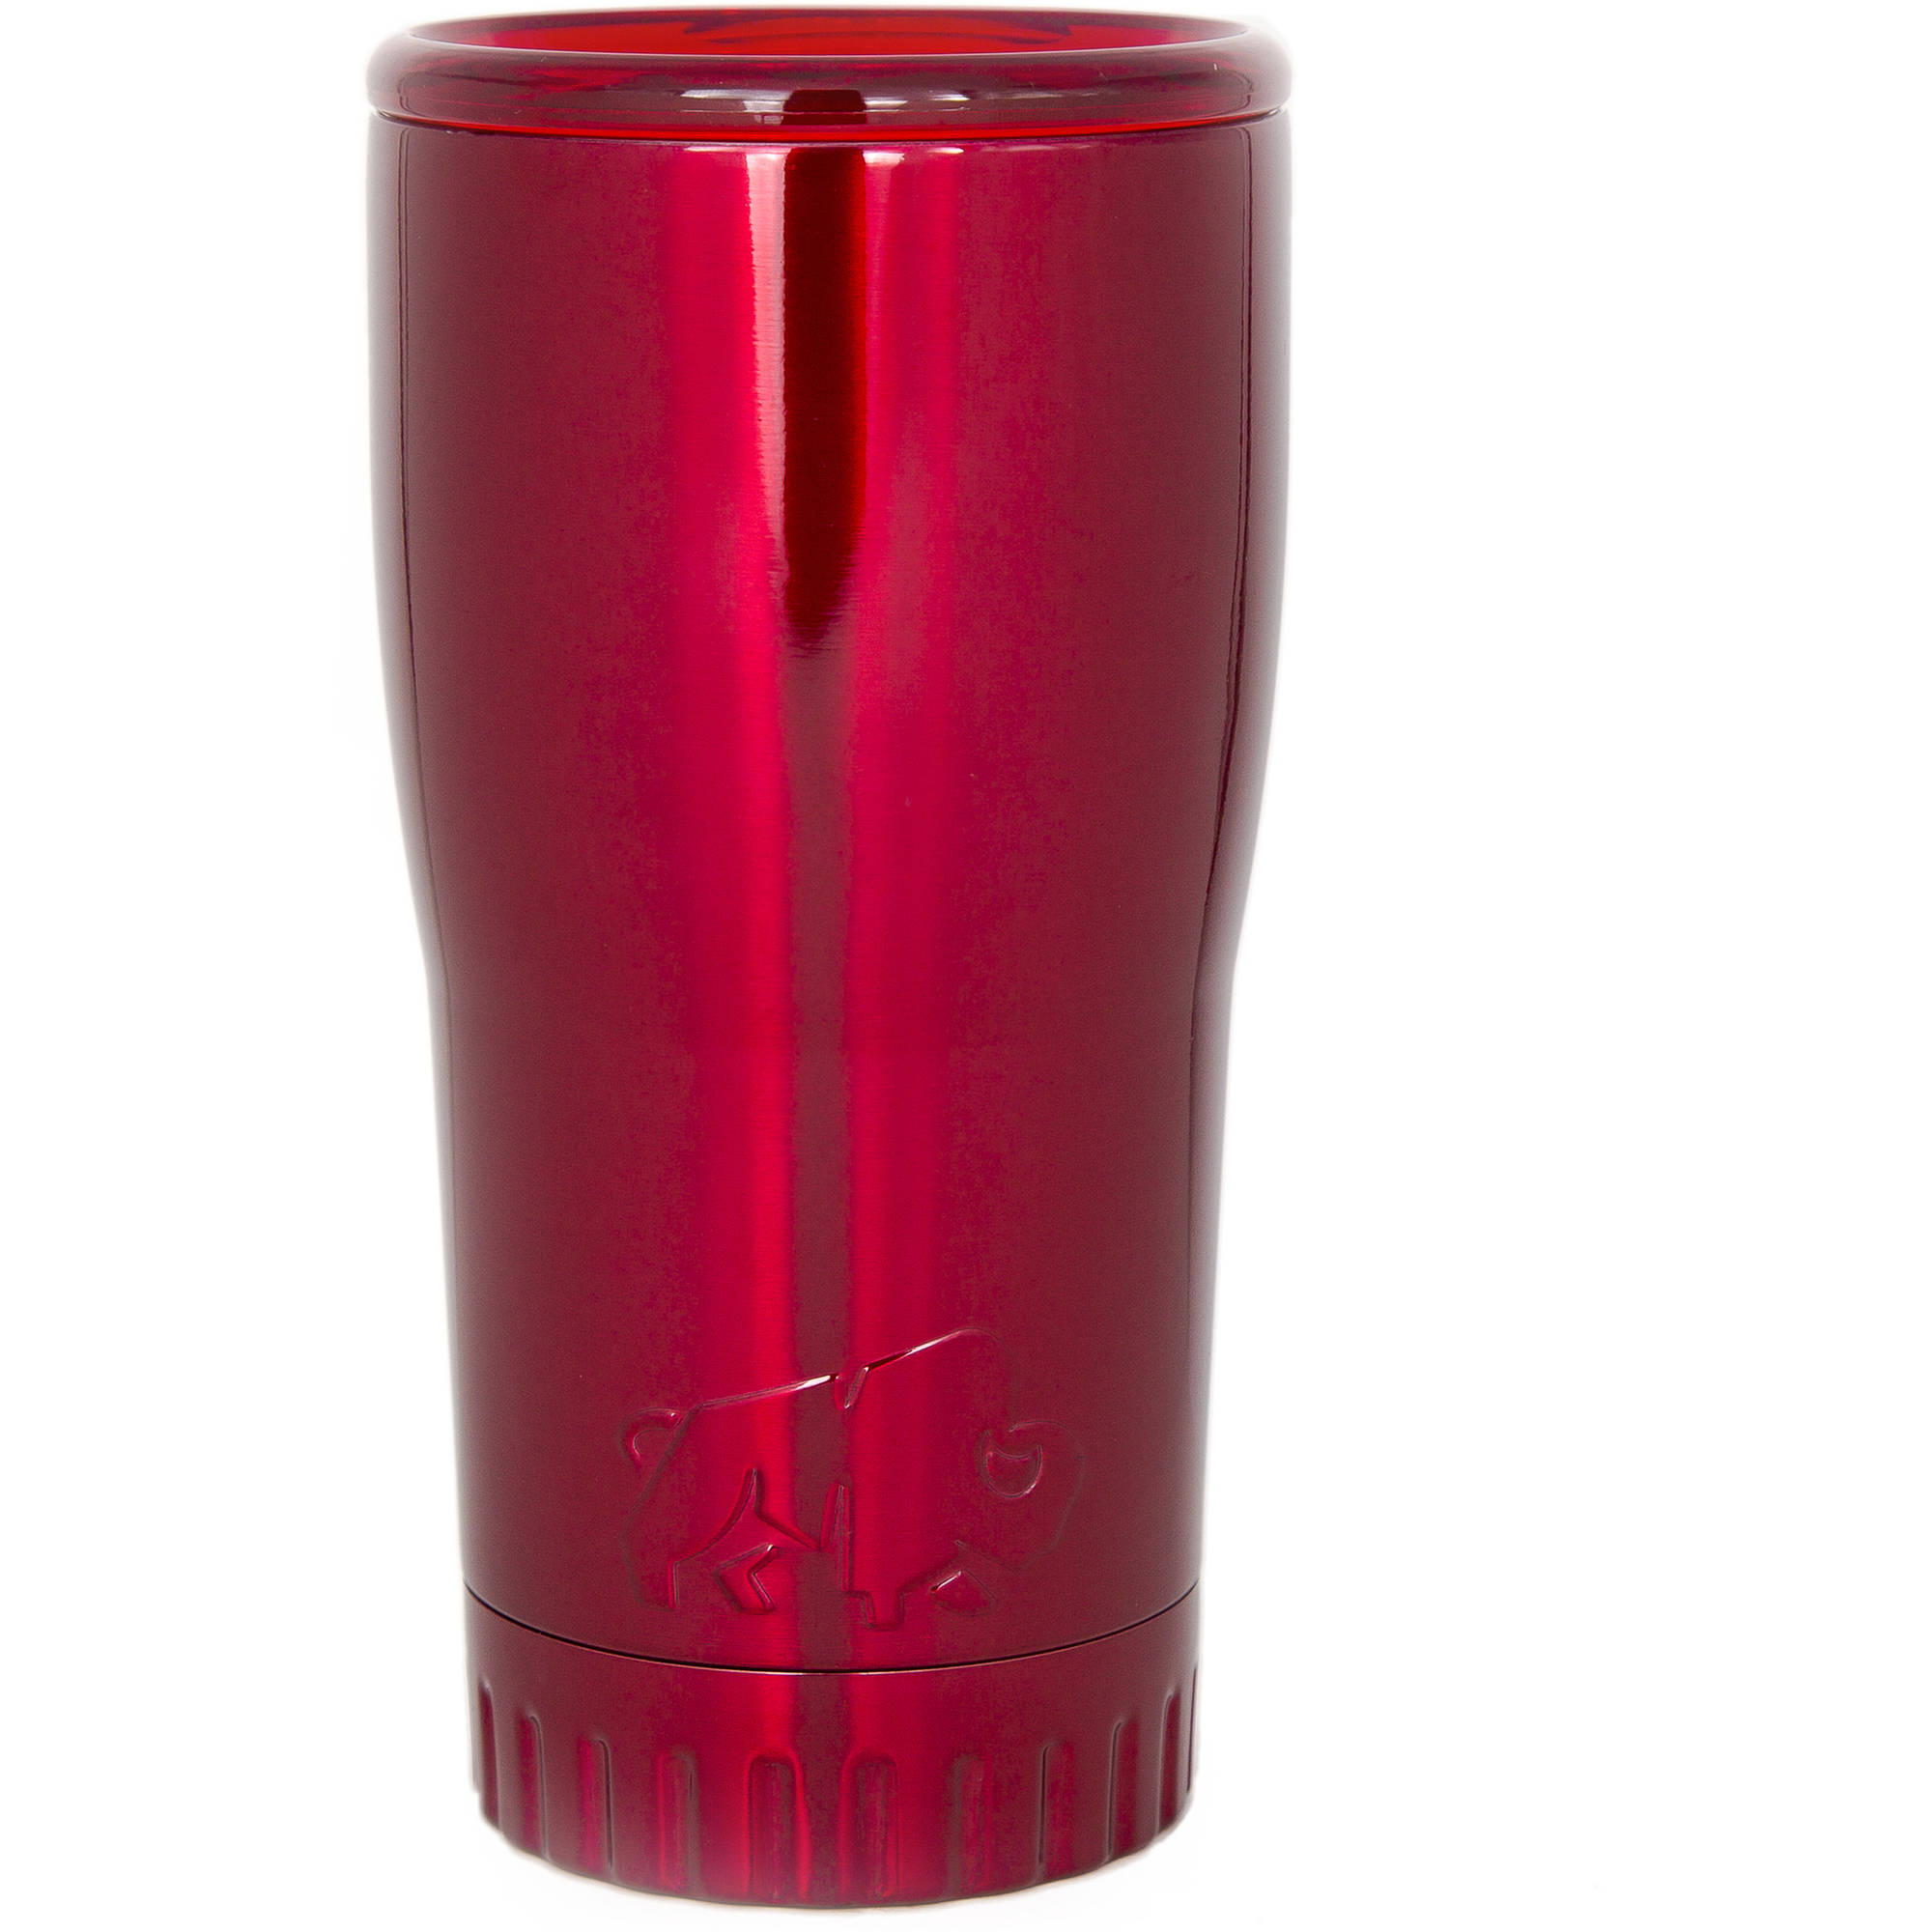 20 oz Stainless Steel Tumbler Cup by Silver Buffalo Red by Generic